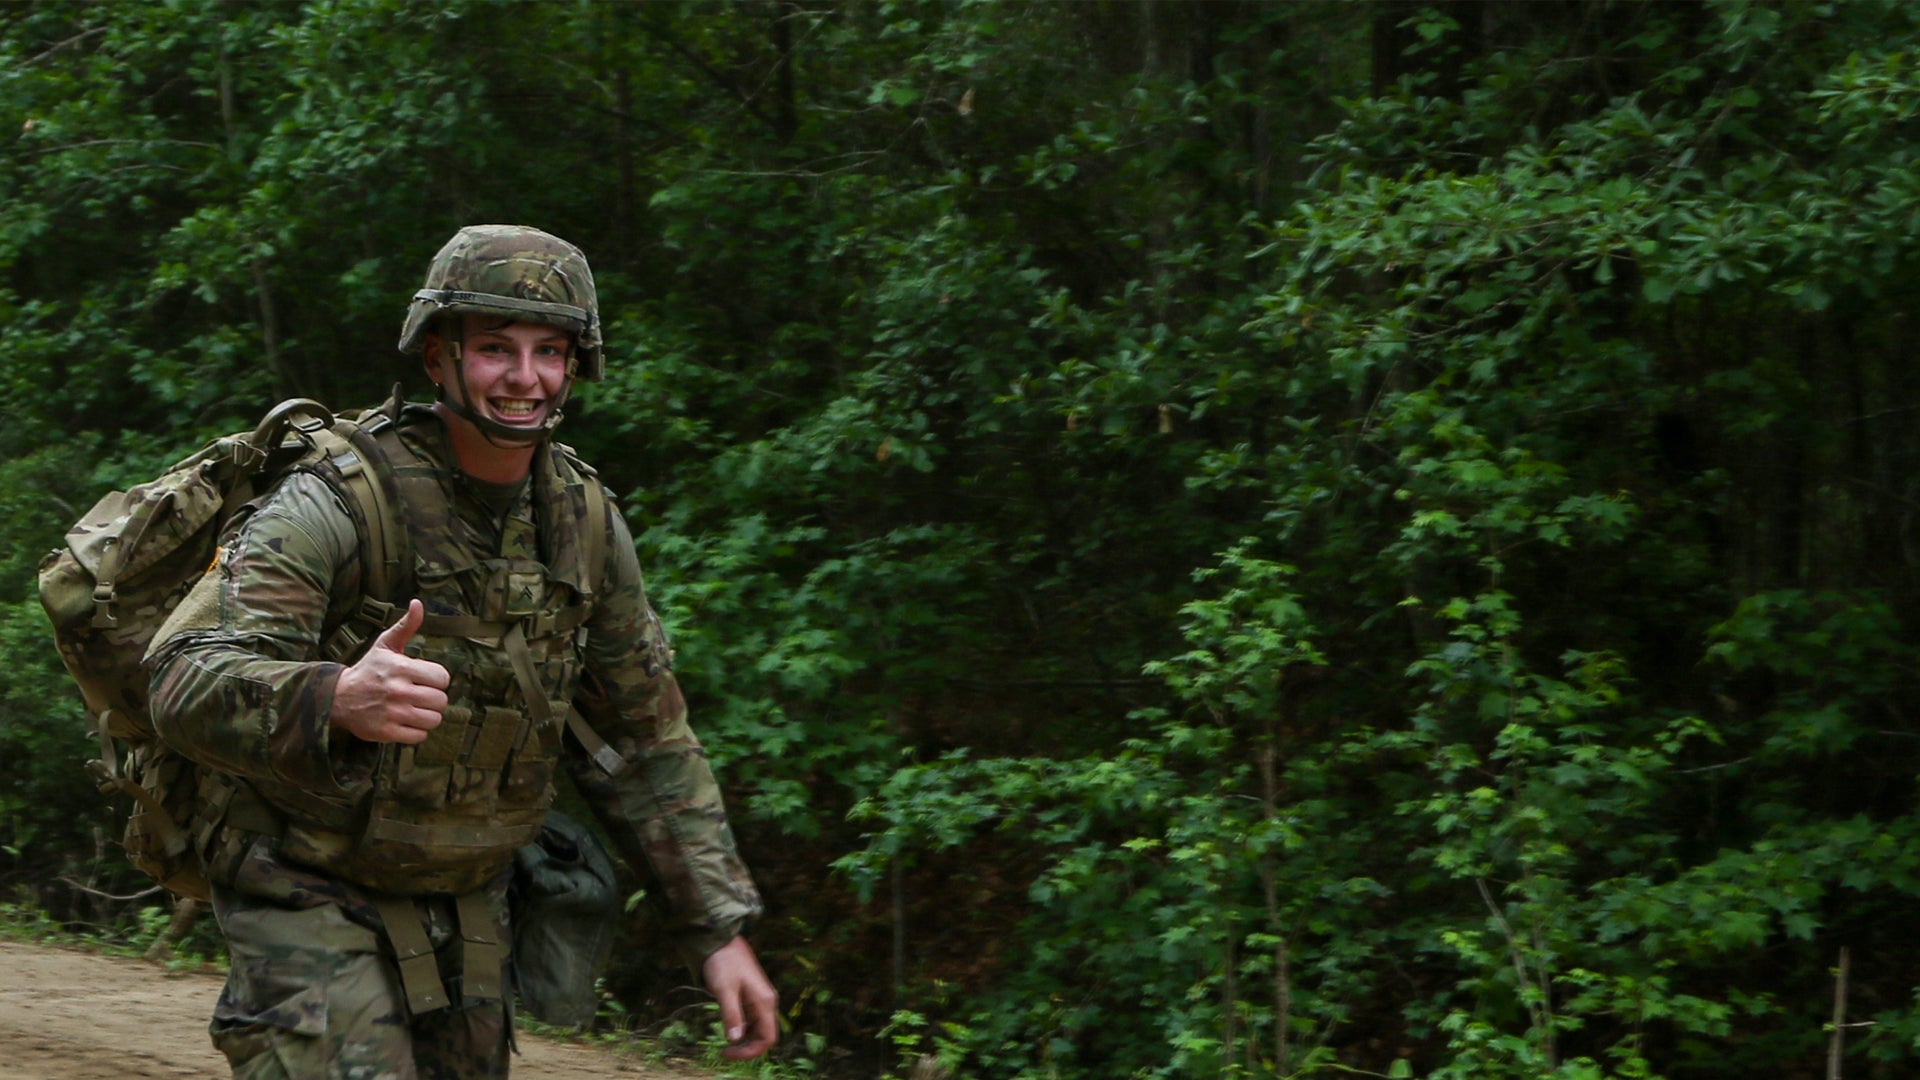 The Army's sergeants of the future will need to be corporals first